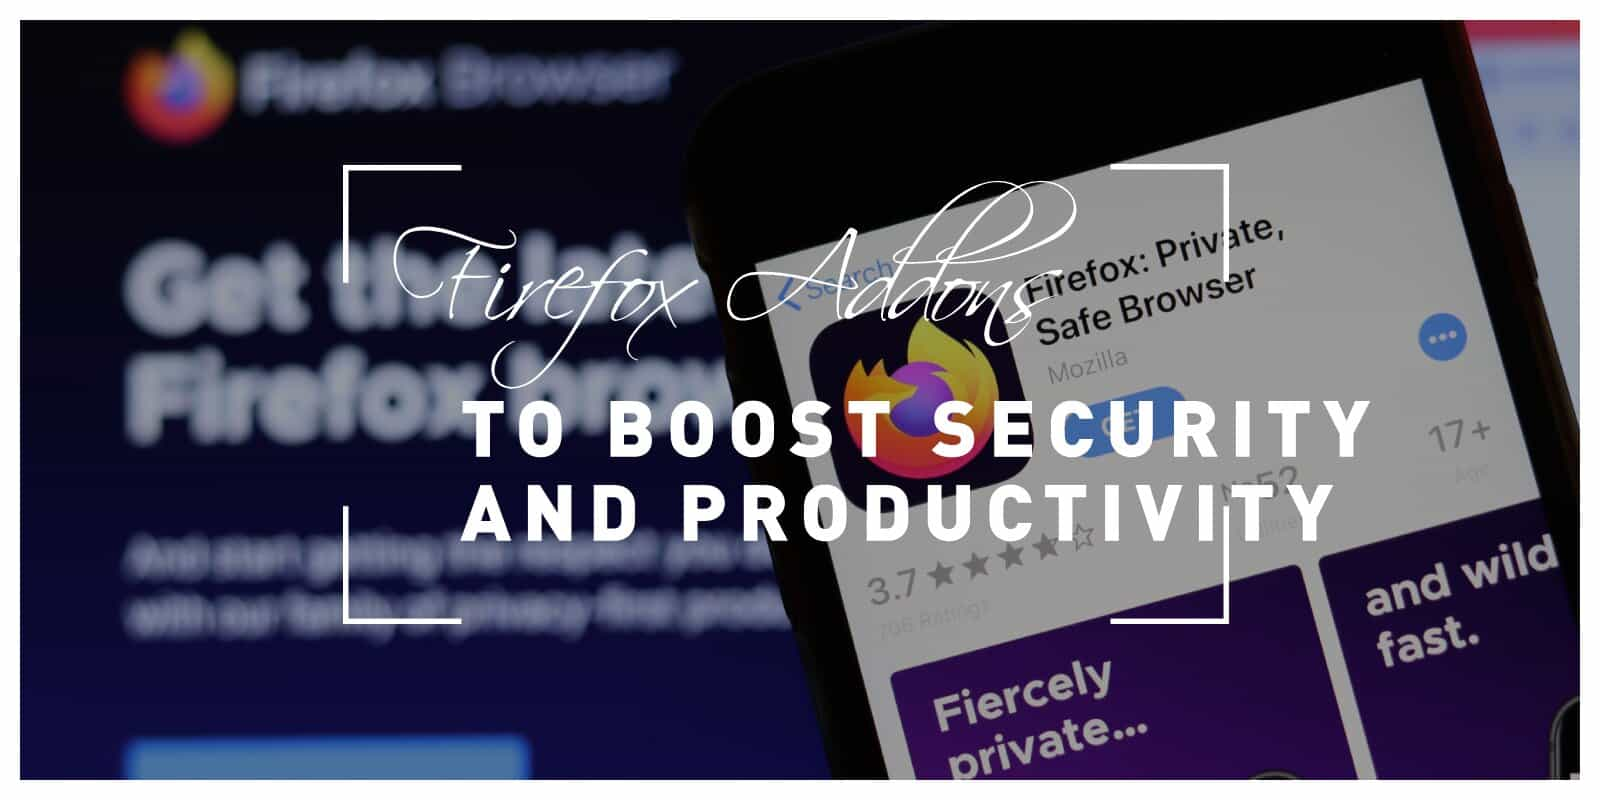 Best Firefox Addons To Boost Security And Productivity In 2021